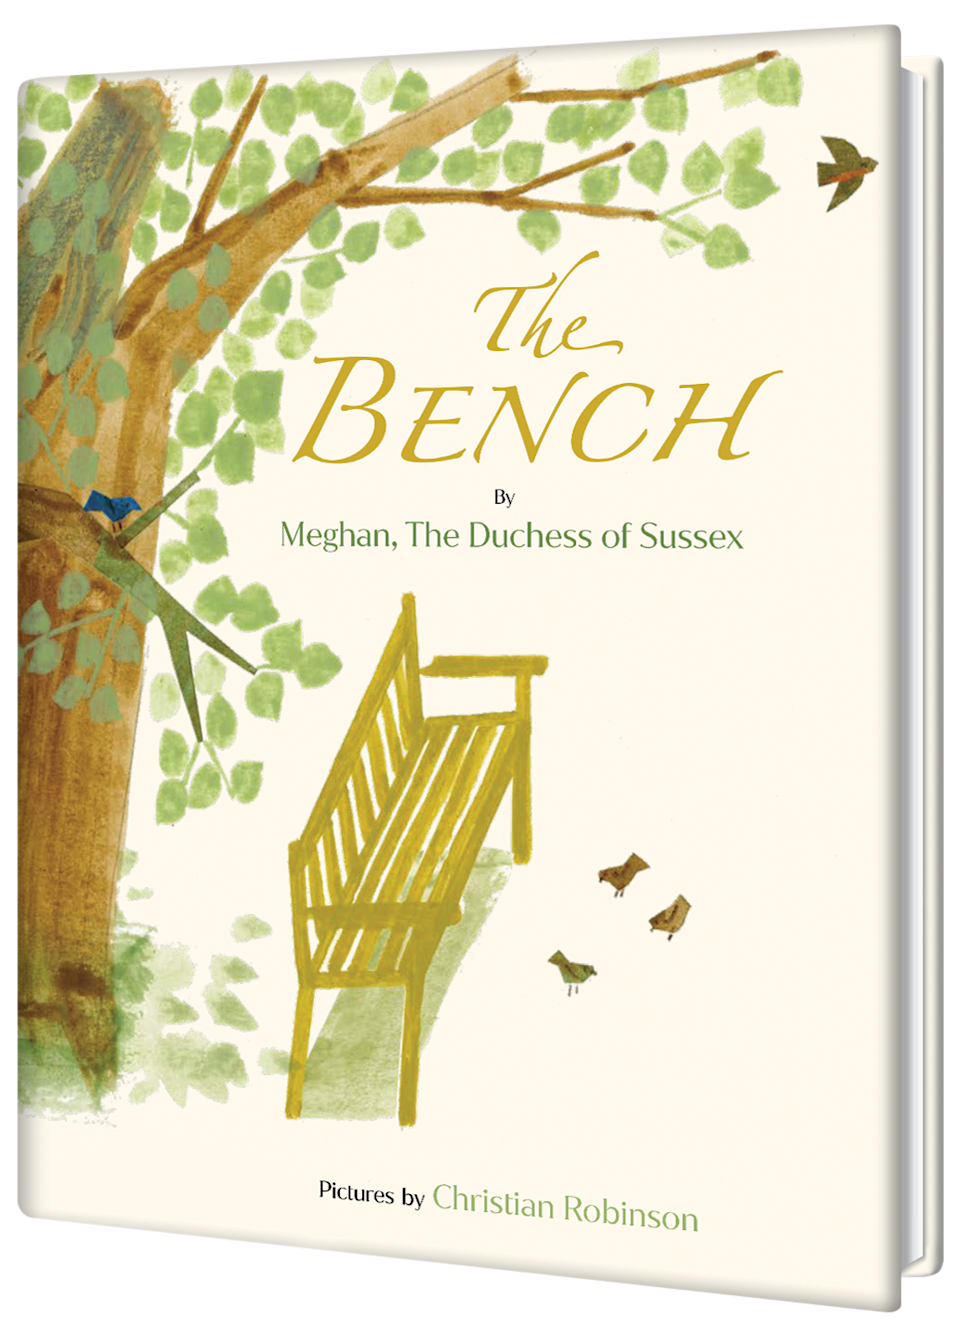 A book cover has a watercolor illustration of a tree and a bench and small birds.